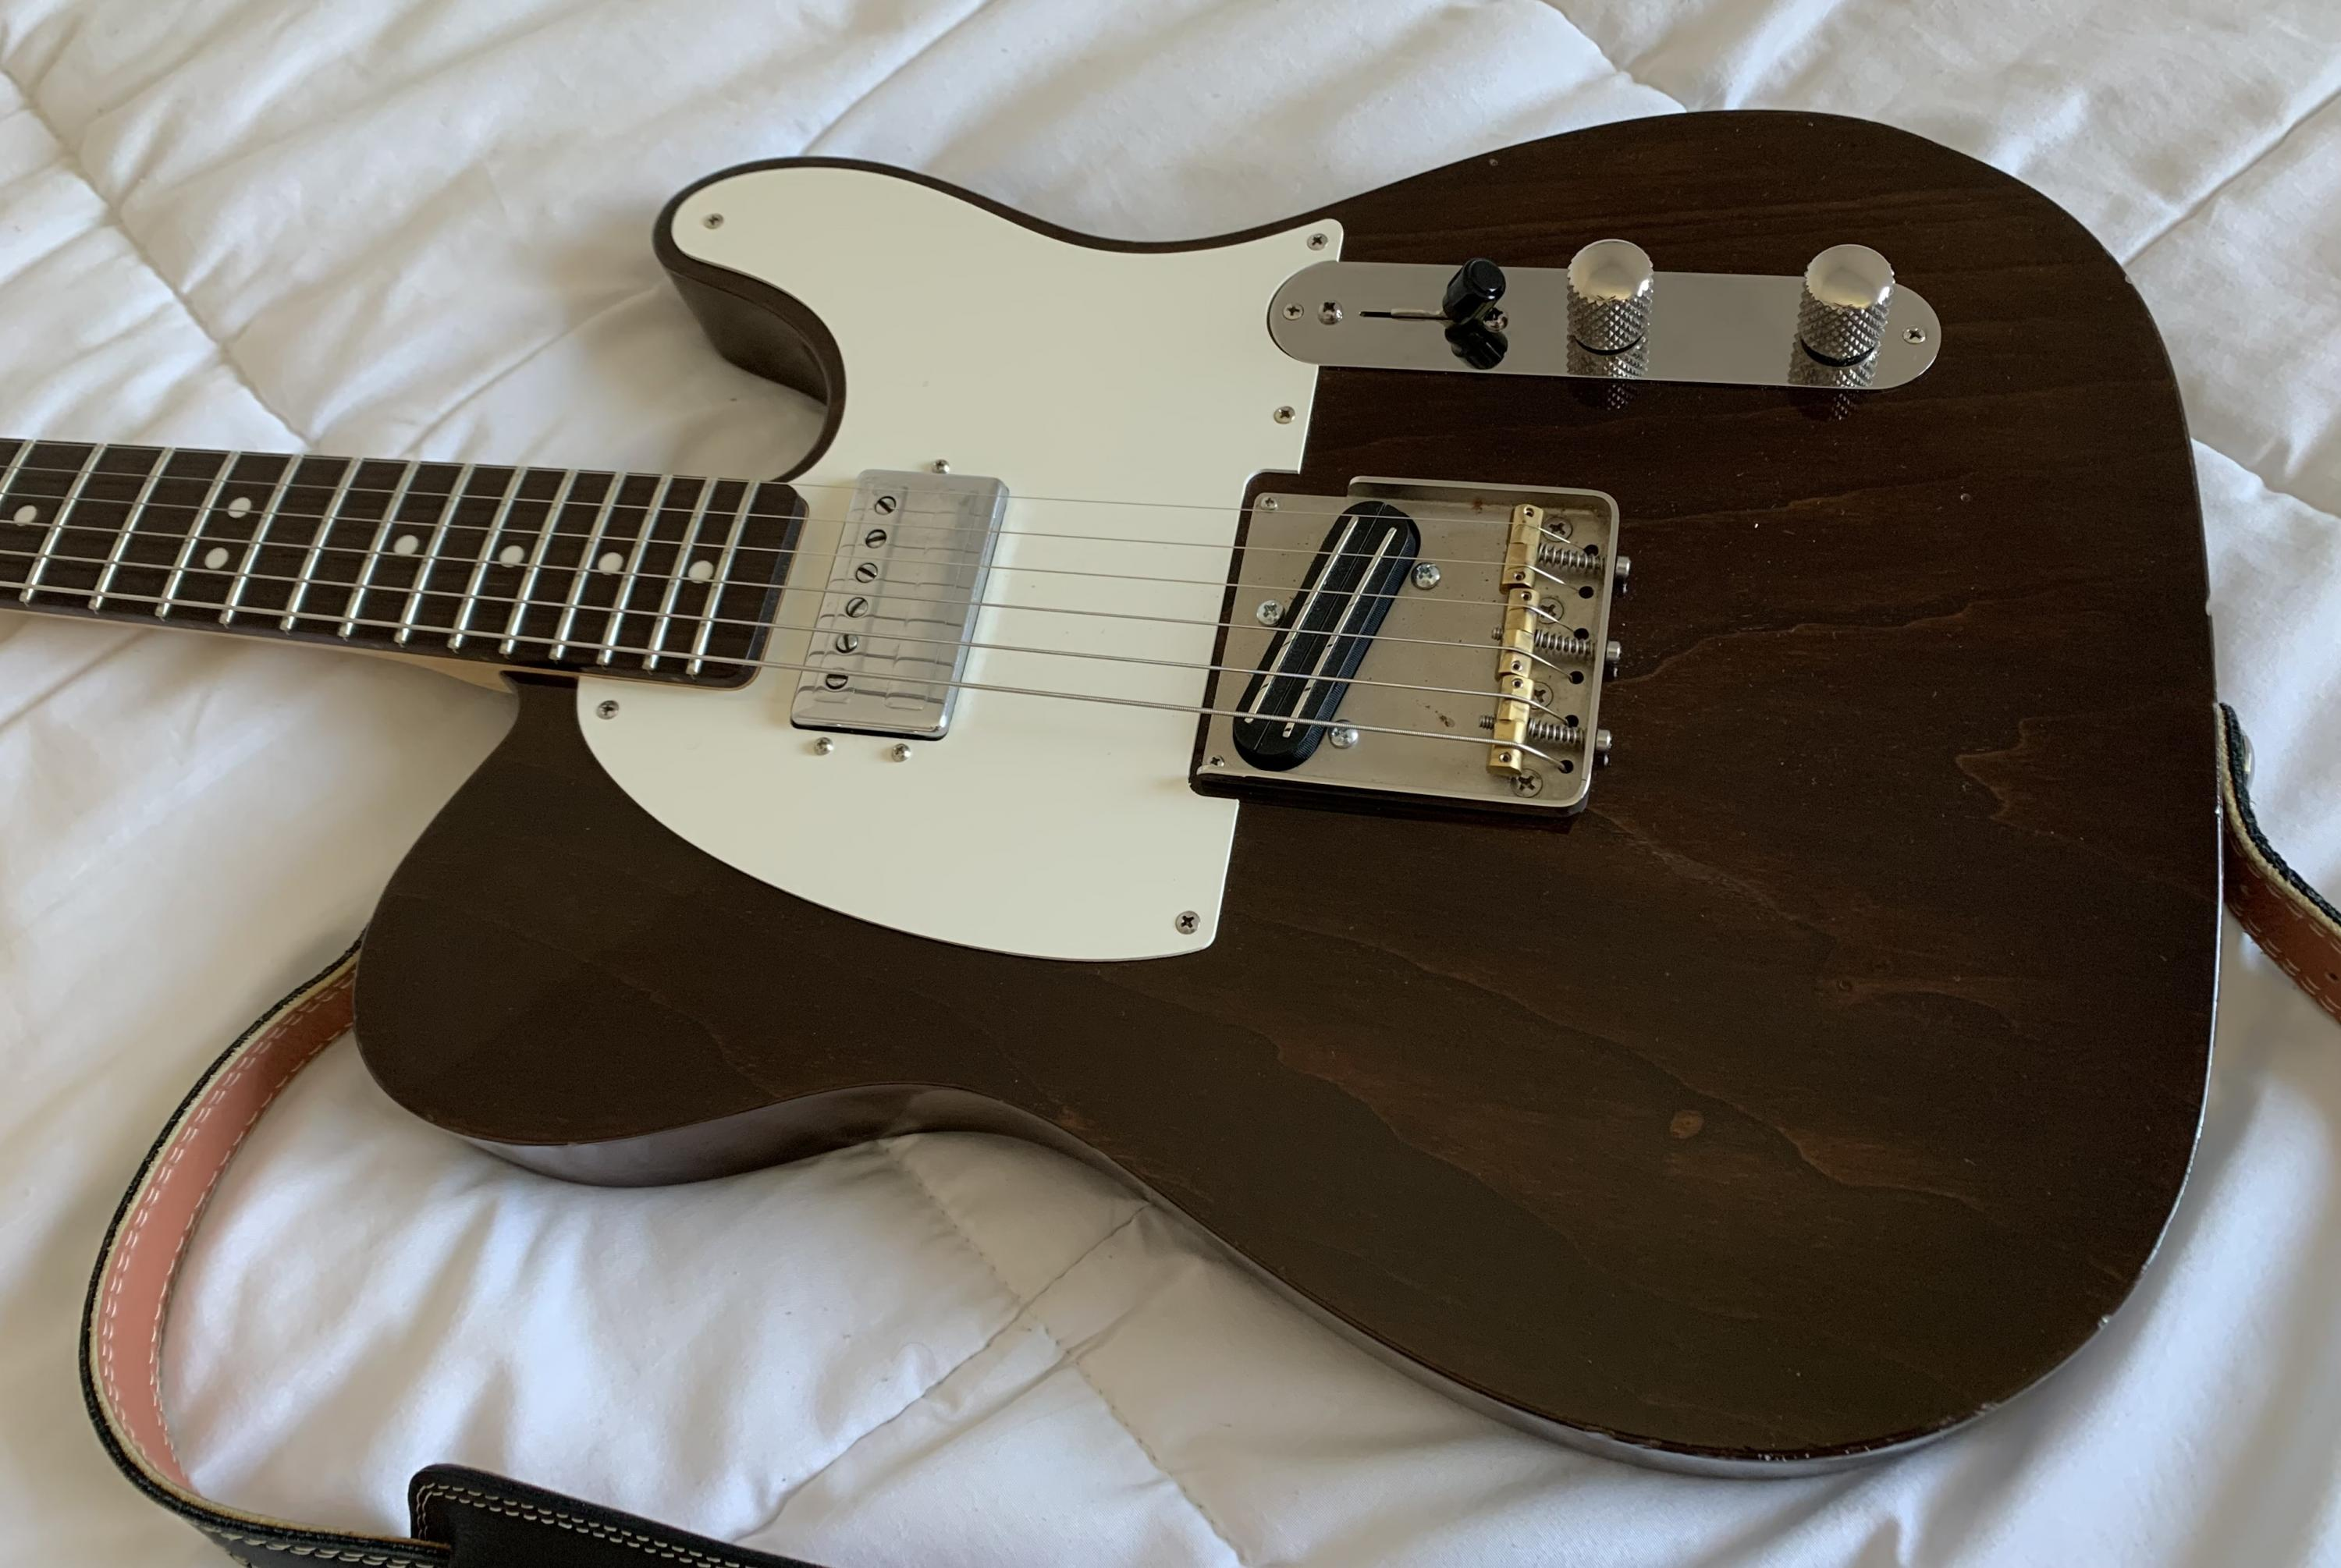 Telecaster Love Thread, No Archtops Allowed-img_0173-jpg